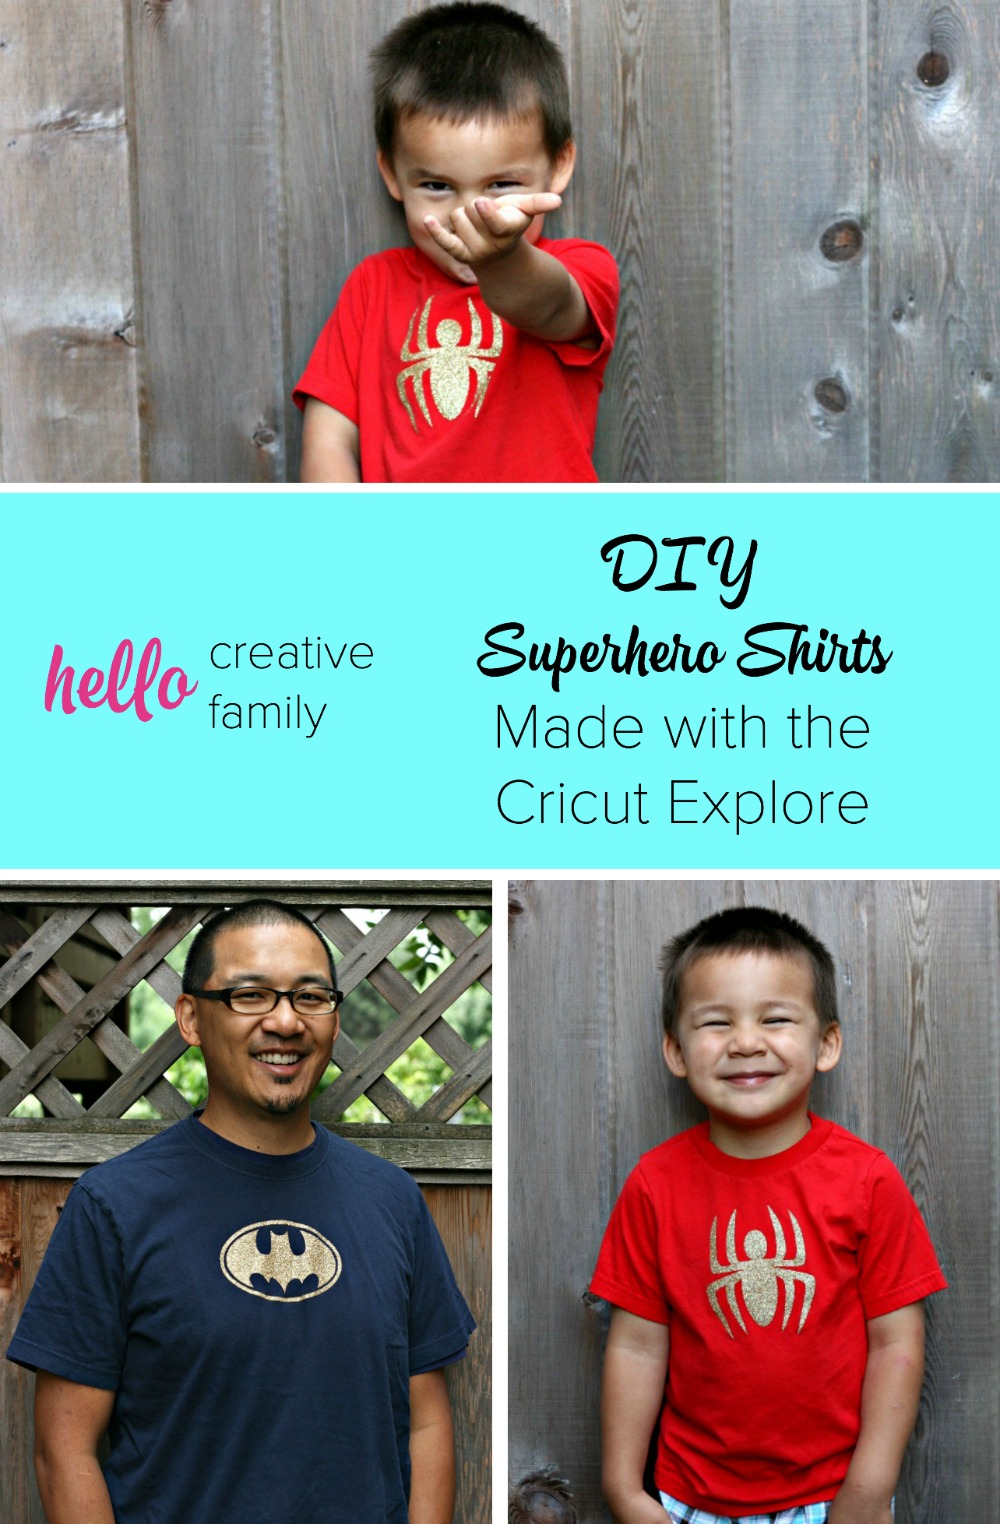 These would make such adorable birthday party favors for a boy or girl's superhero themed birthday party! Take any superhero emblem and make a DIY Superhero Shirt using the Cricut Explore. What a fun Cricut project!